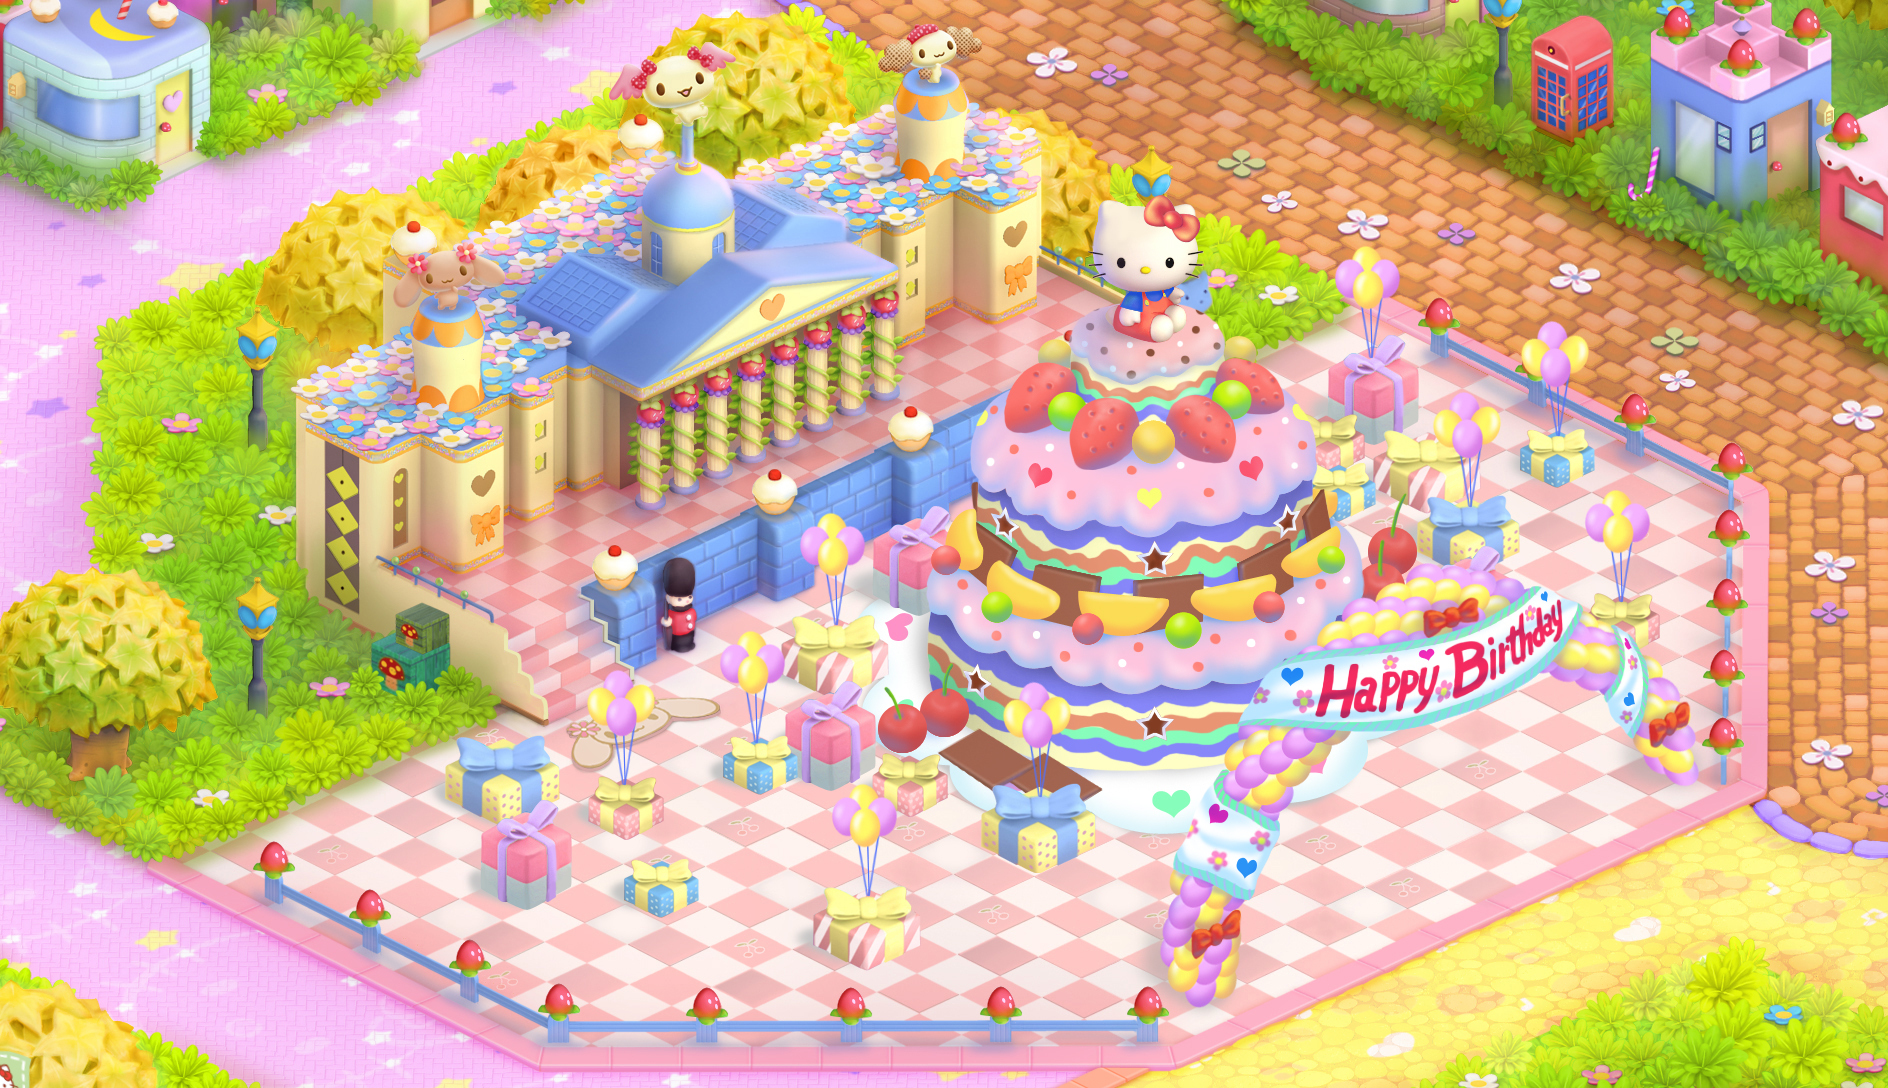 London Birthday Decorations - Hello Kitty Online Photo (2878061